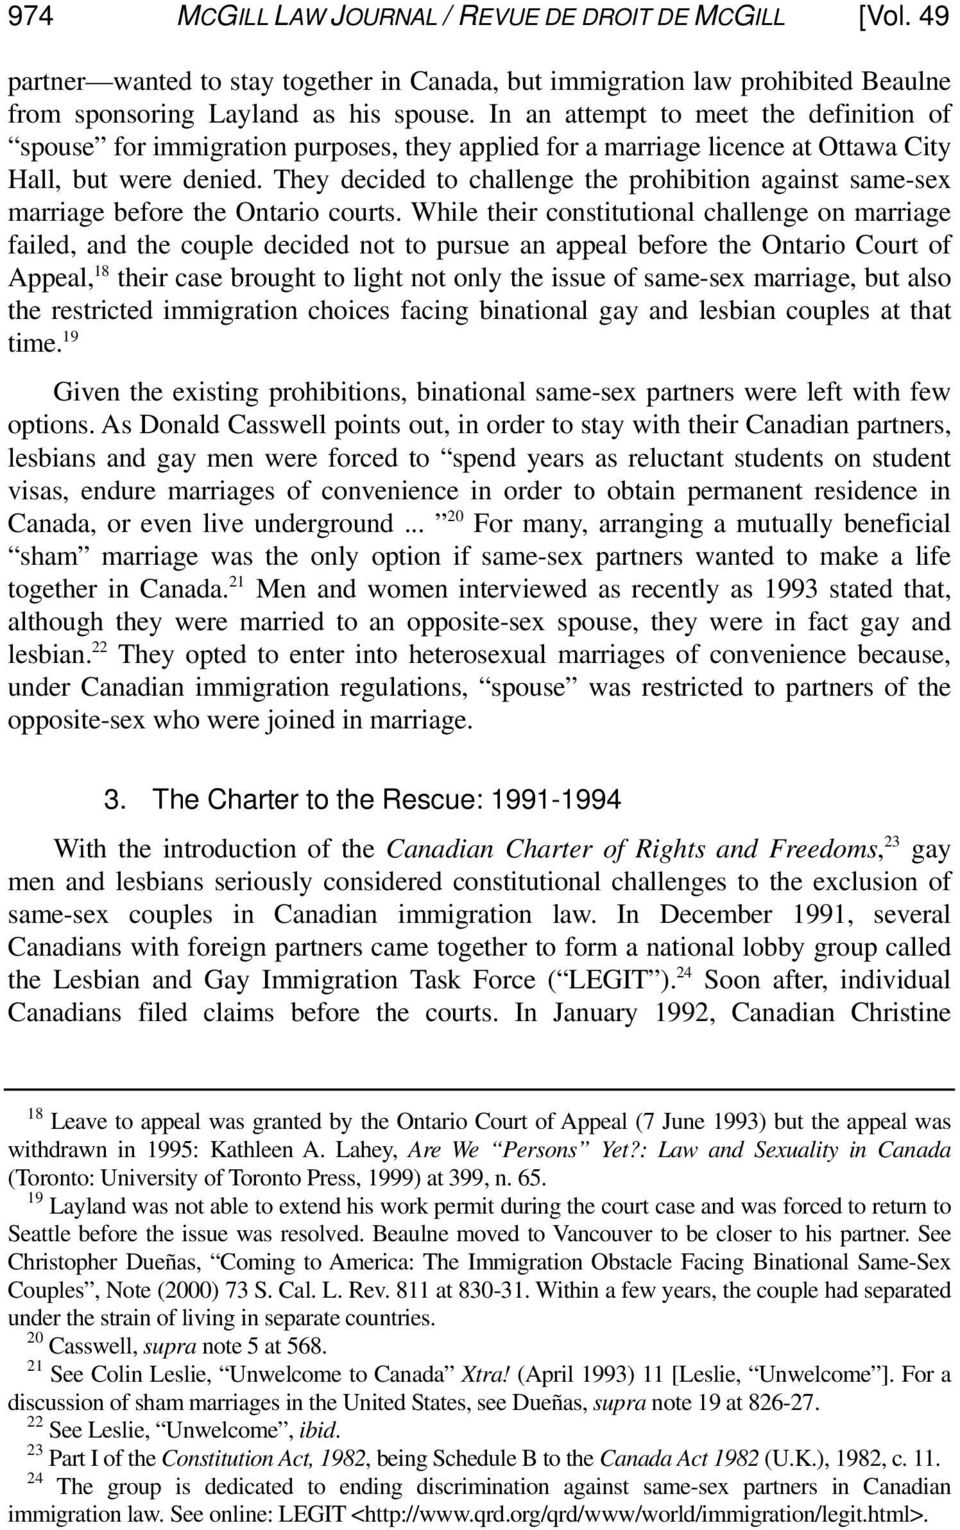 They decided to challenge the prohibition against same-sex marriage before the Ontario courts.